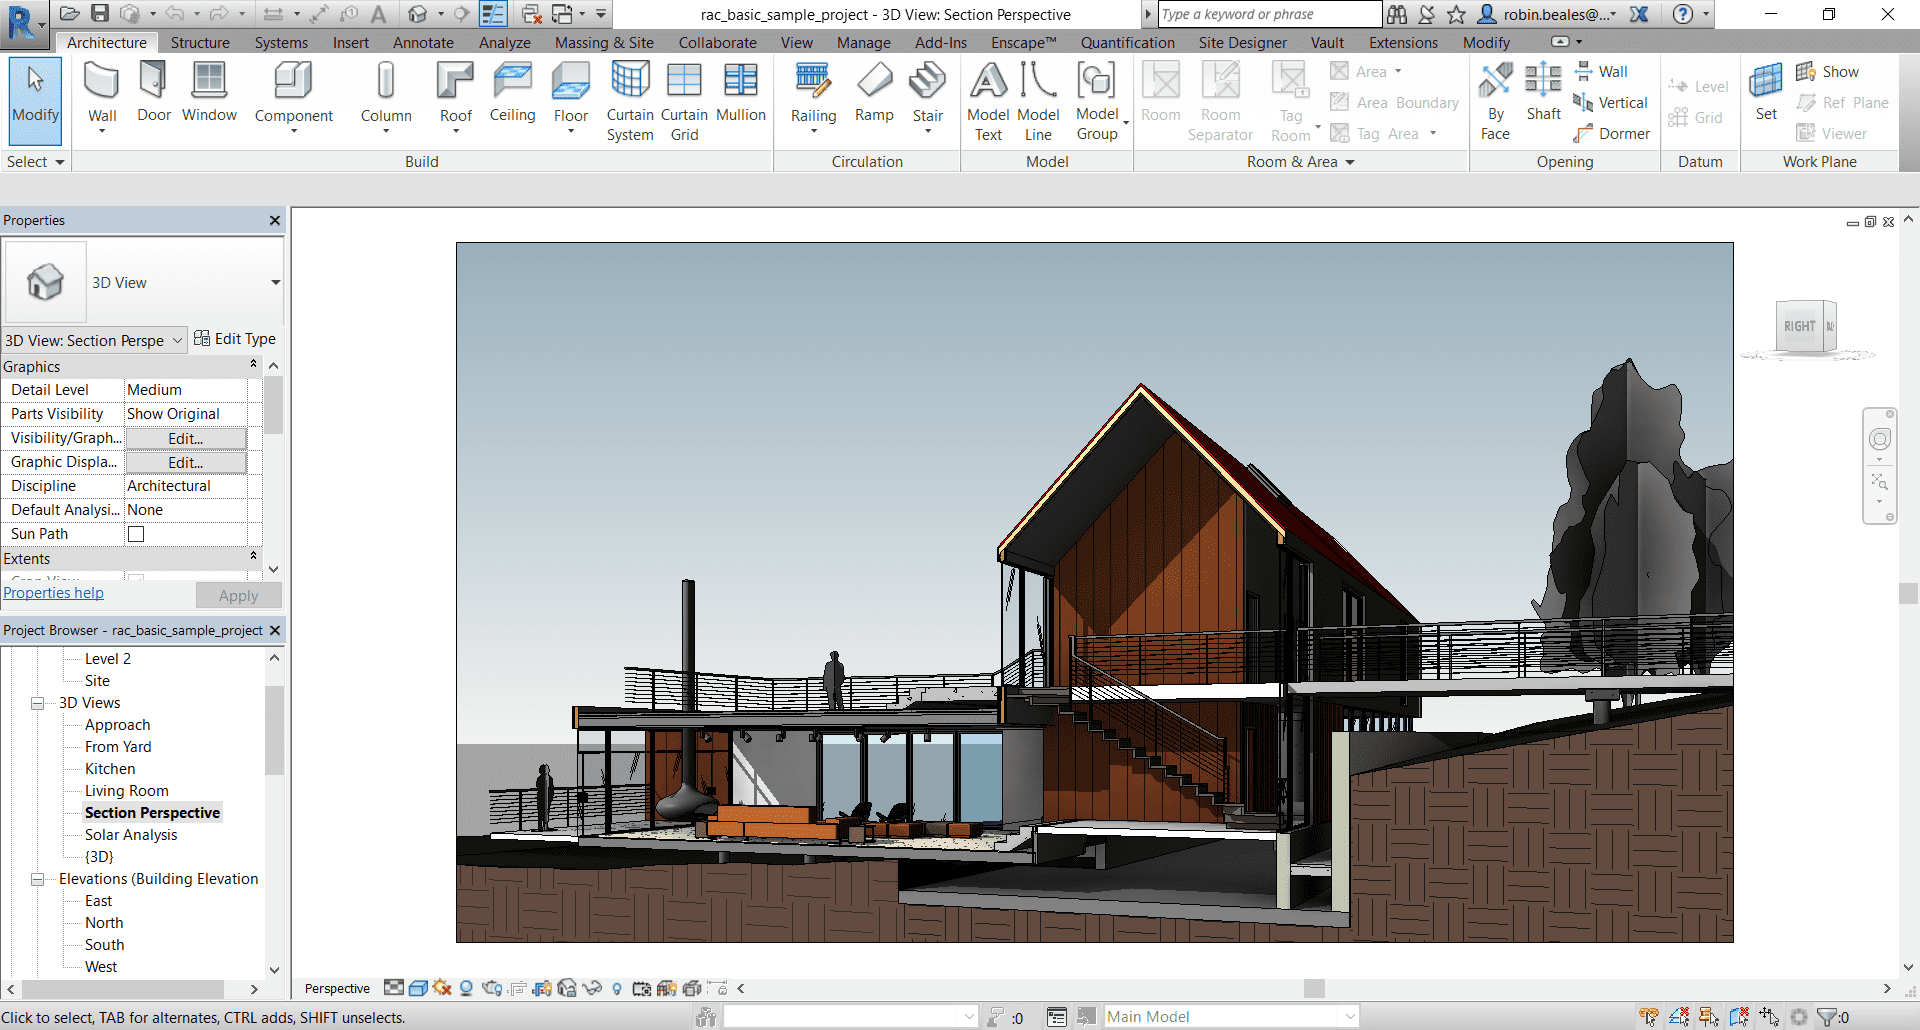 revit_screen2